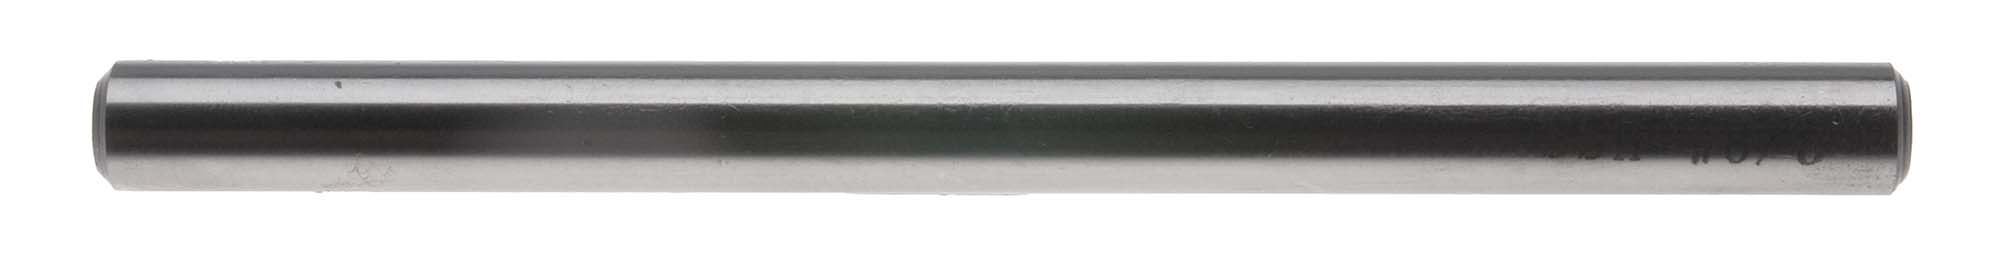 "#23 (.1540"") Jobber Length Drill Blank, High Speed Steel"